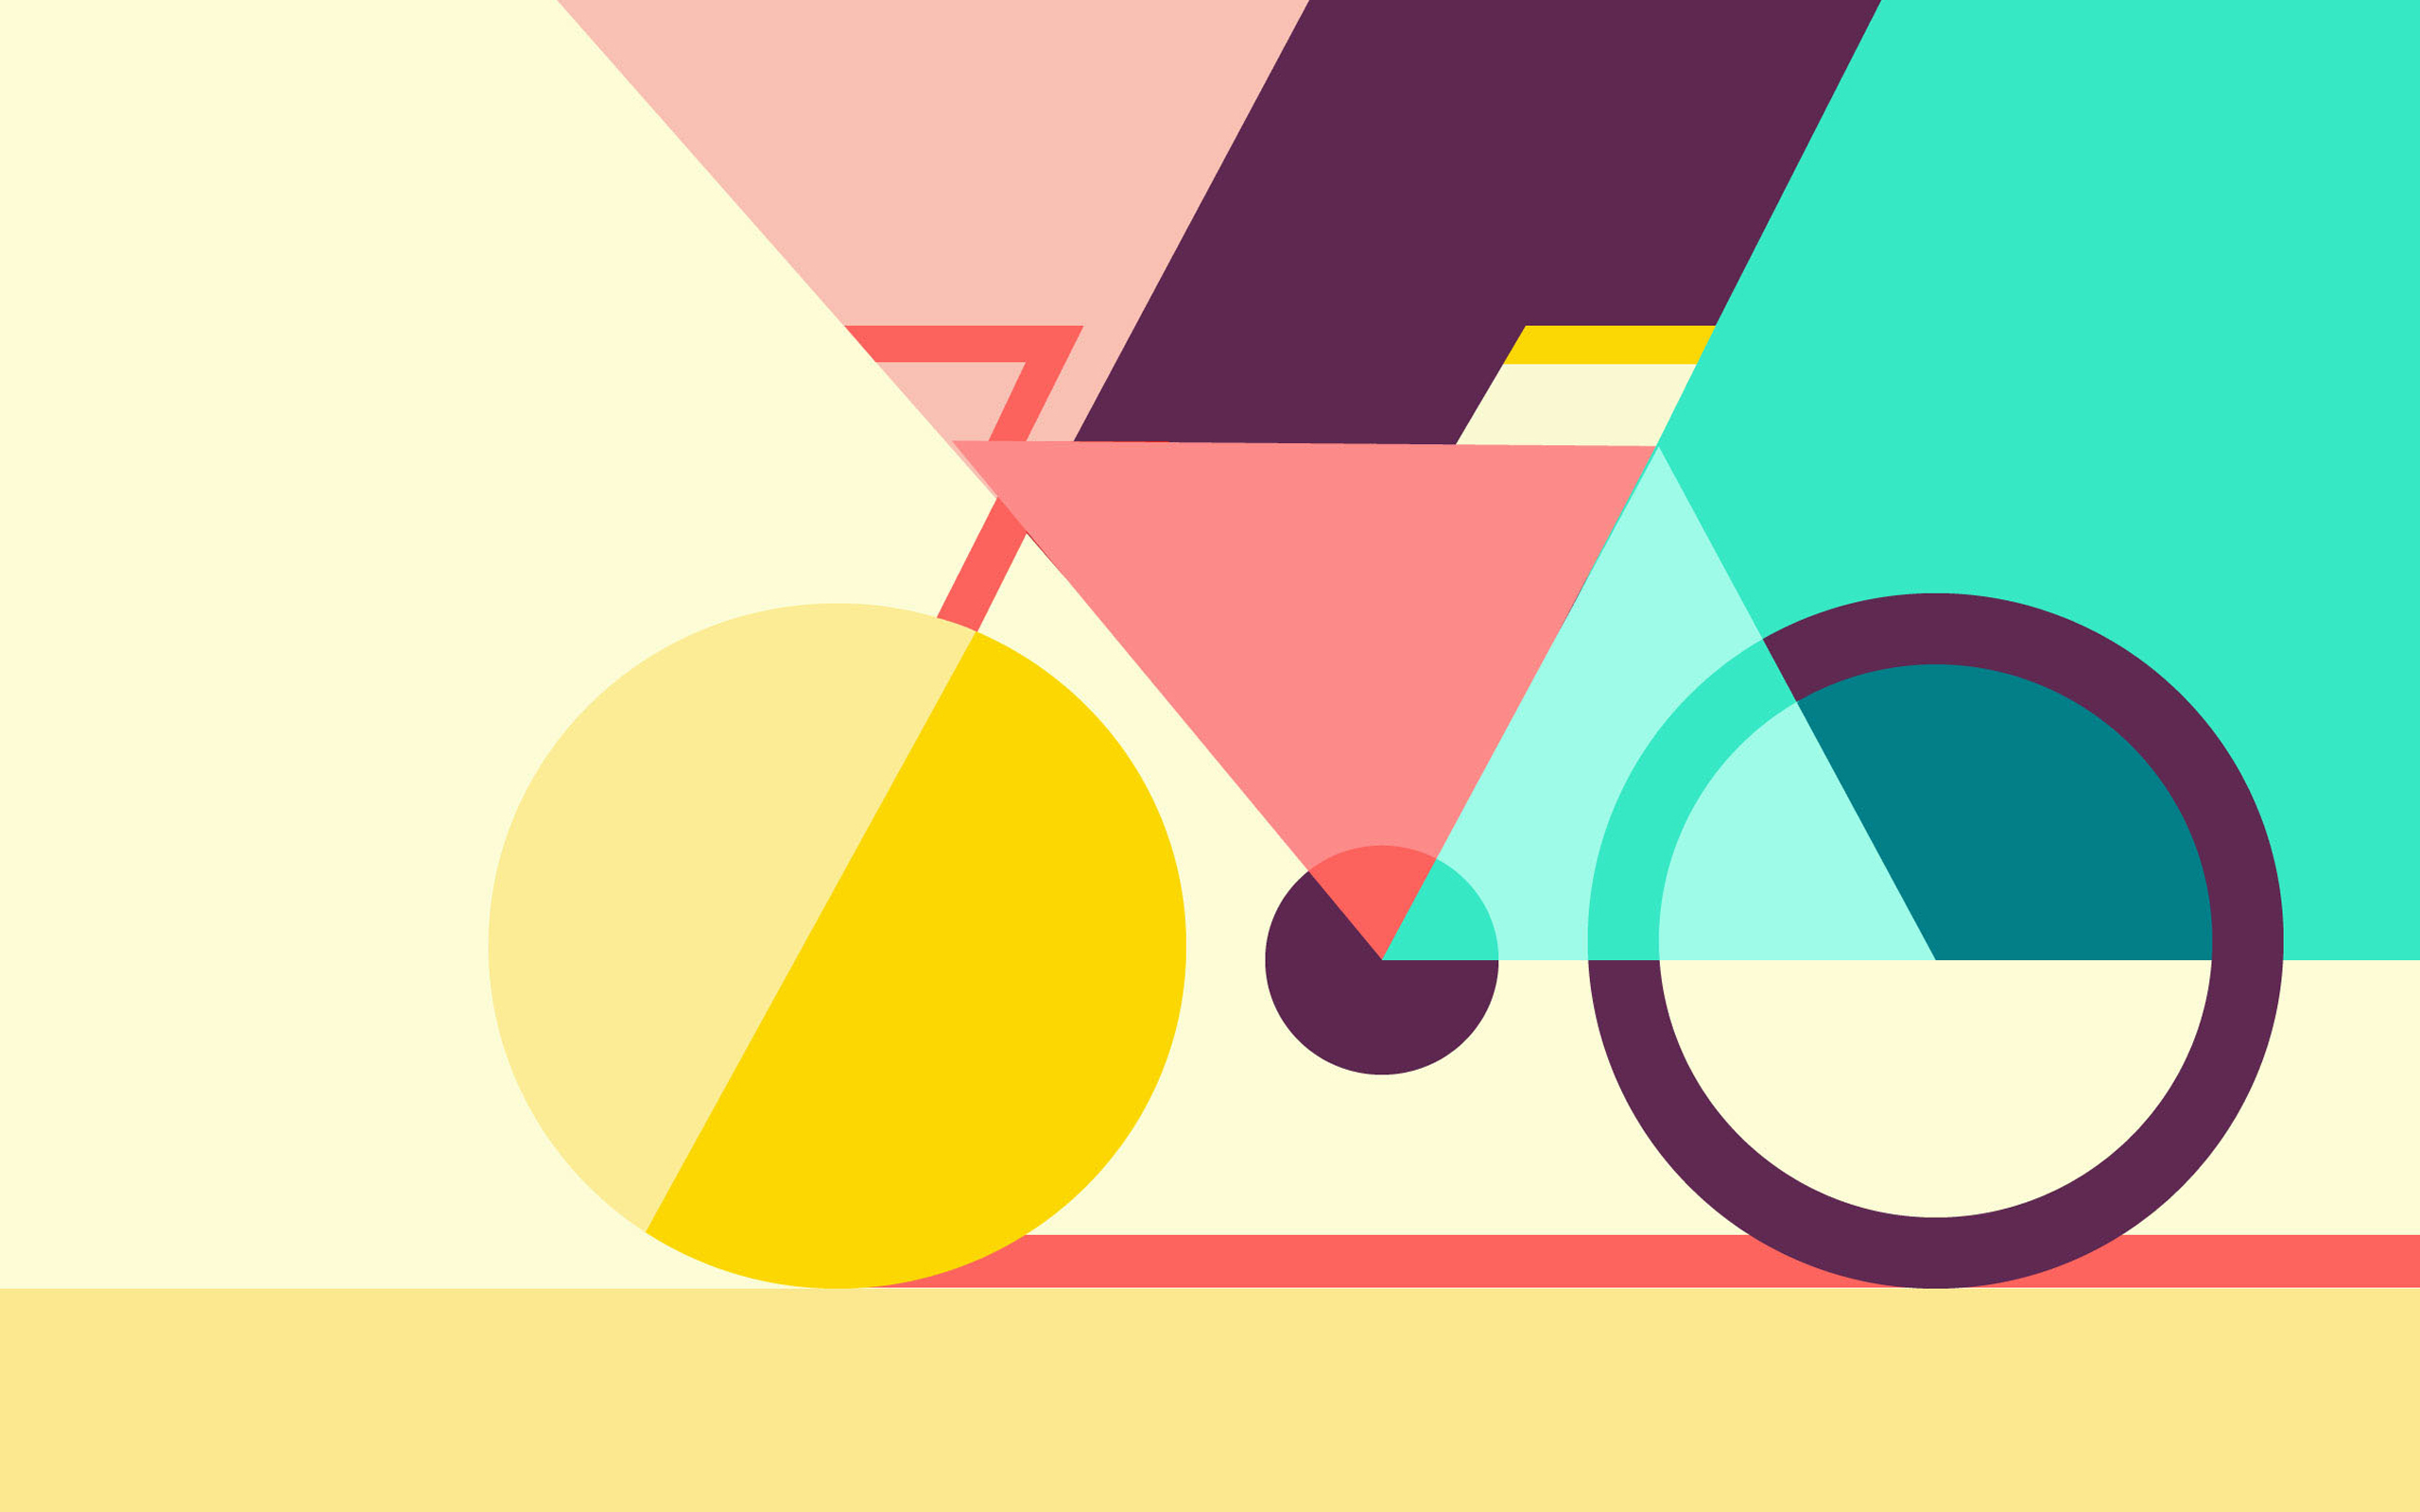 Geometric Abstract Bicycle728653106 - Geometric Abstract Bicycle - Neon, Geometric, Bicycle, abstract